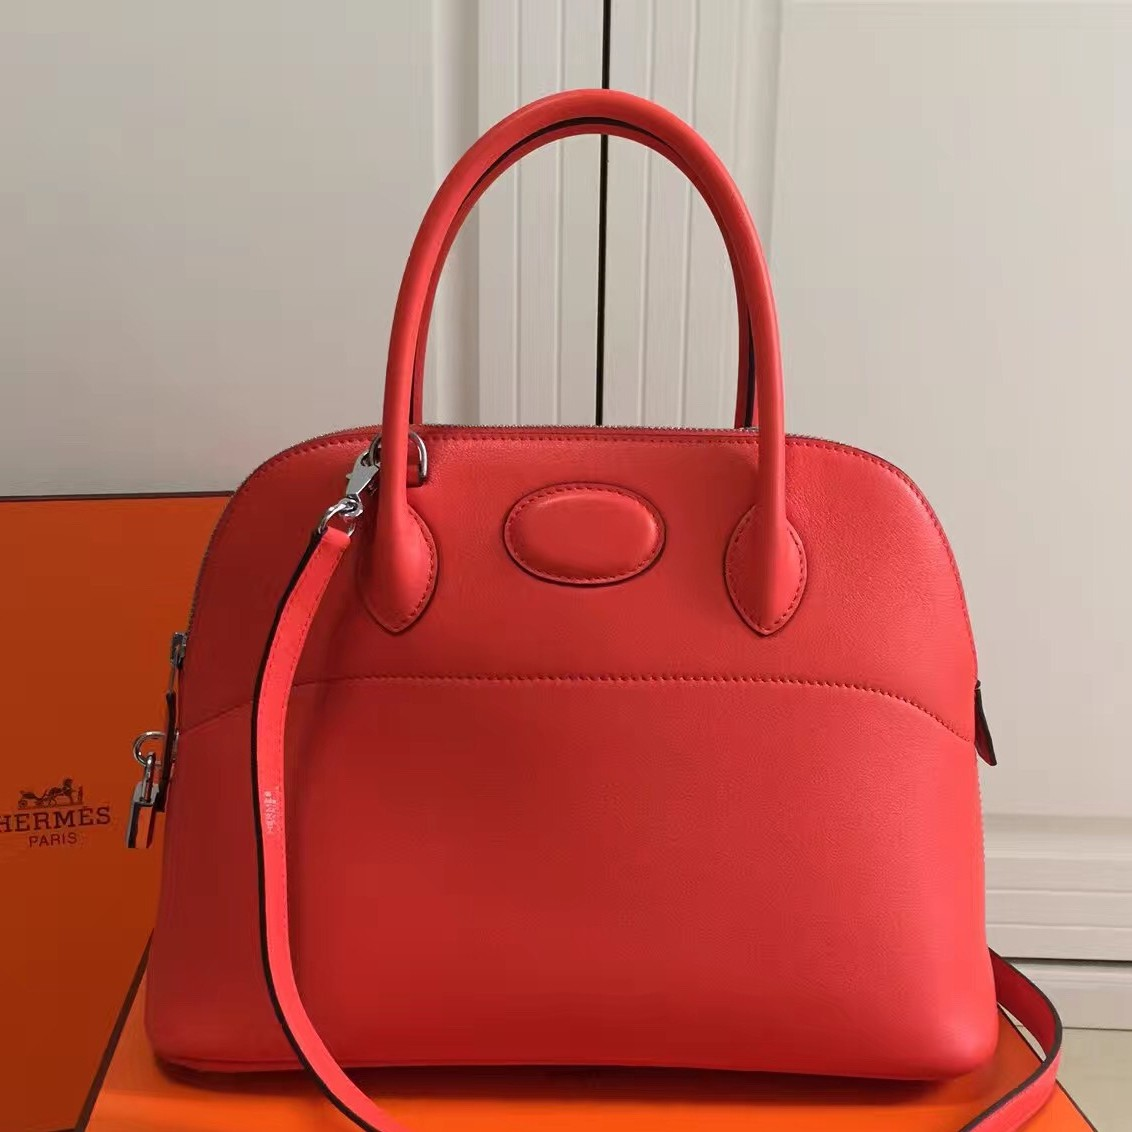 Replica Hermes Bolide 31cm Bag In Red Swift Leather